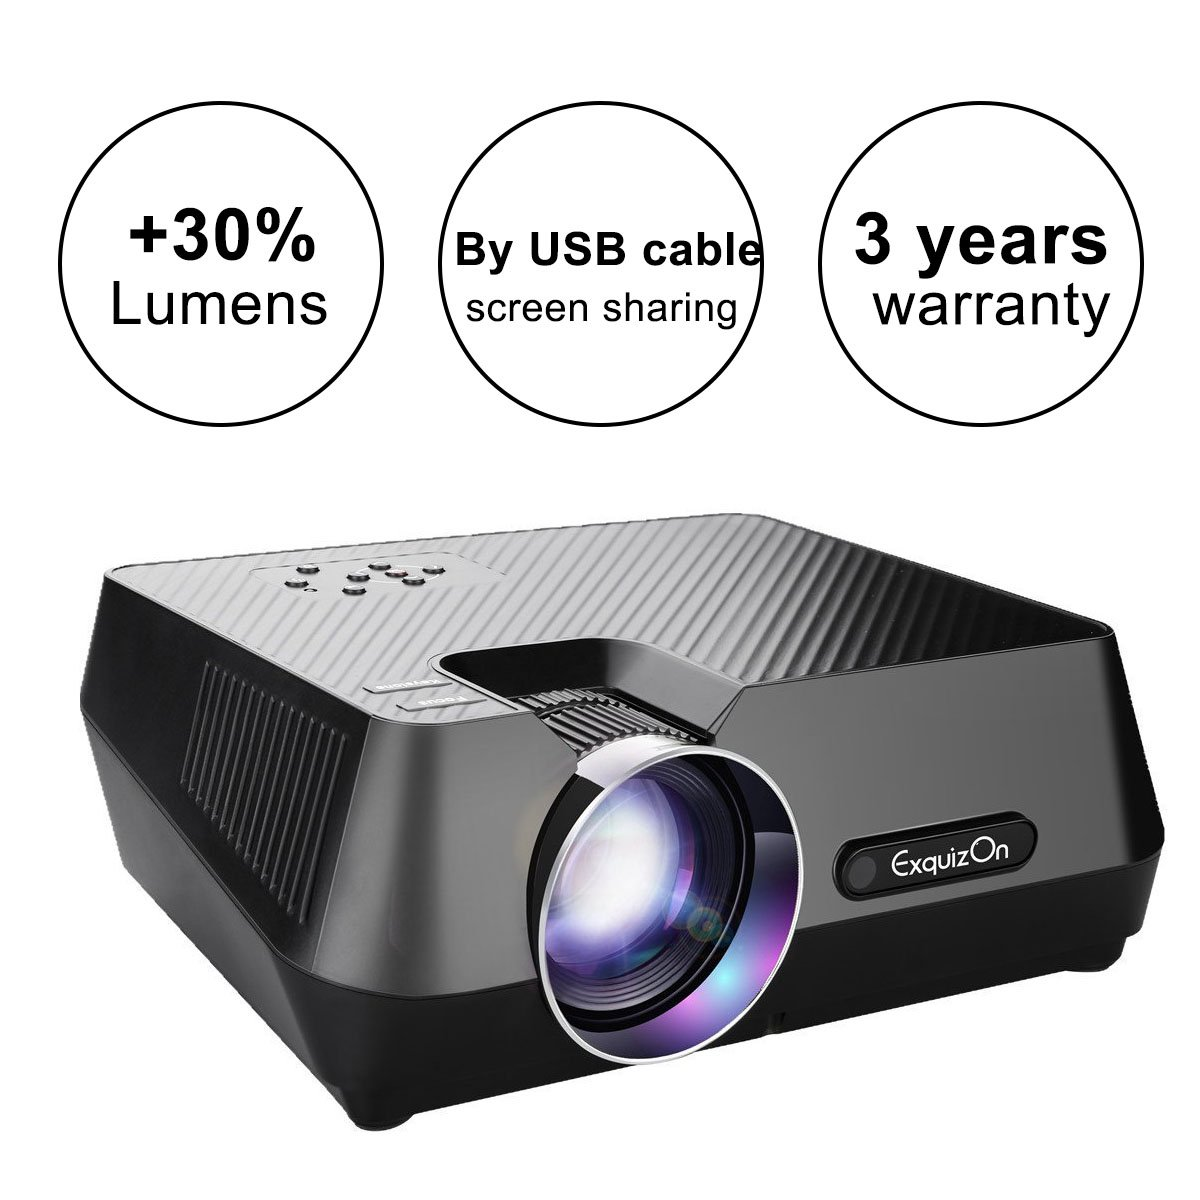 ExquizOn (2018 New Updated Mini Video Projector, 30% Lumens Brighter, New Smart Phone Mirror Function by Lighting or Micro USB Cable, 1800 Lumens Home Theater HDMI USB VGA AV TF (Gt-S9) by ExquizOn